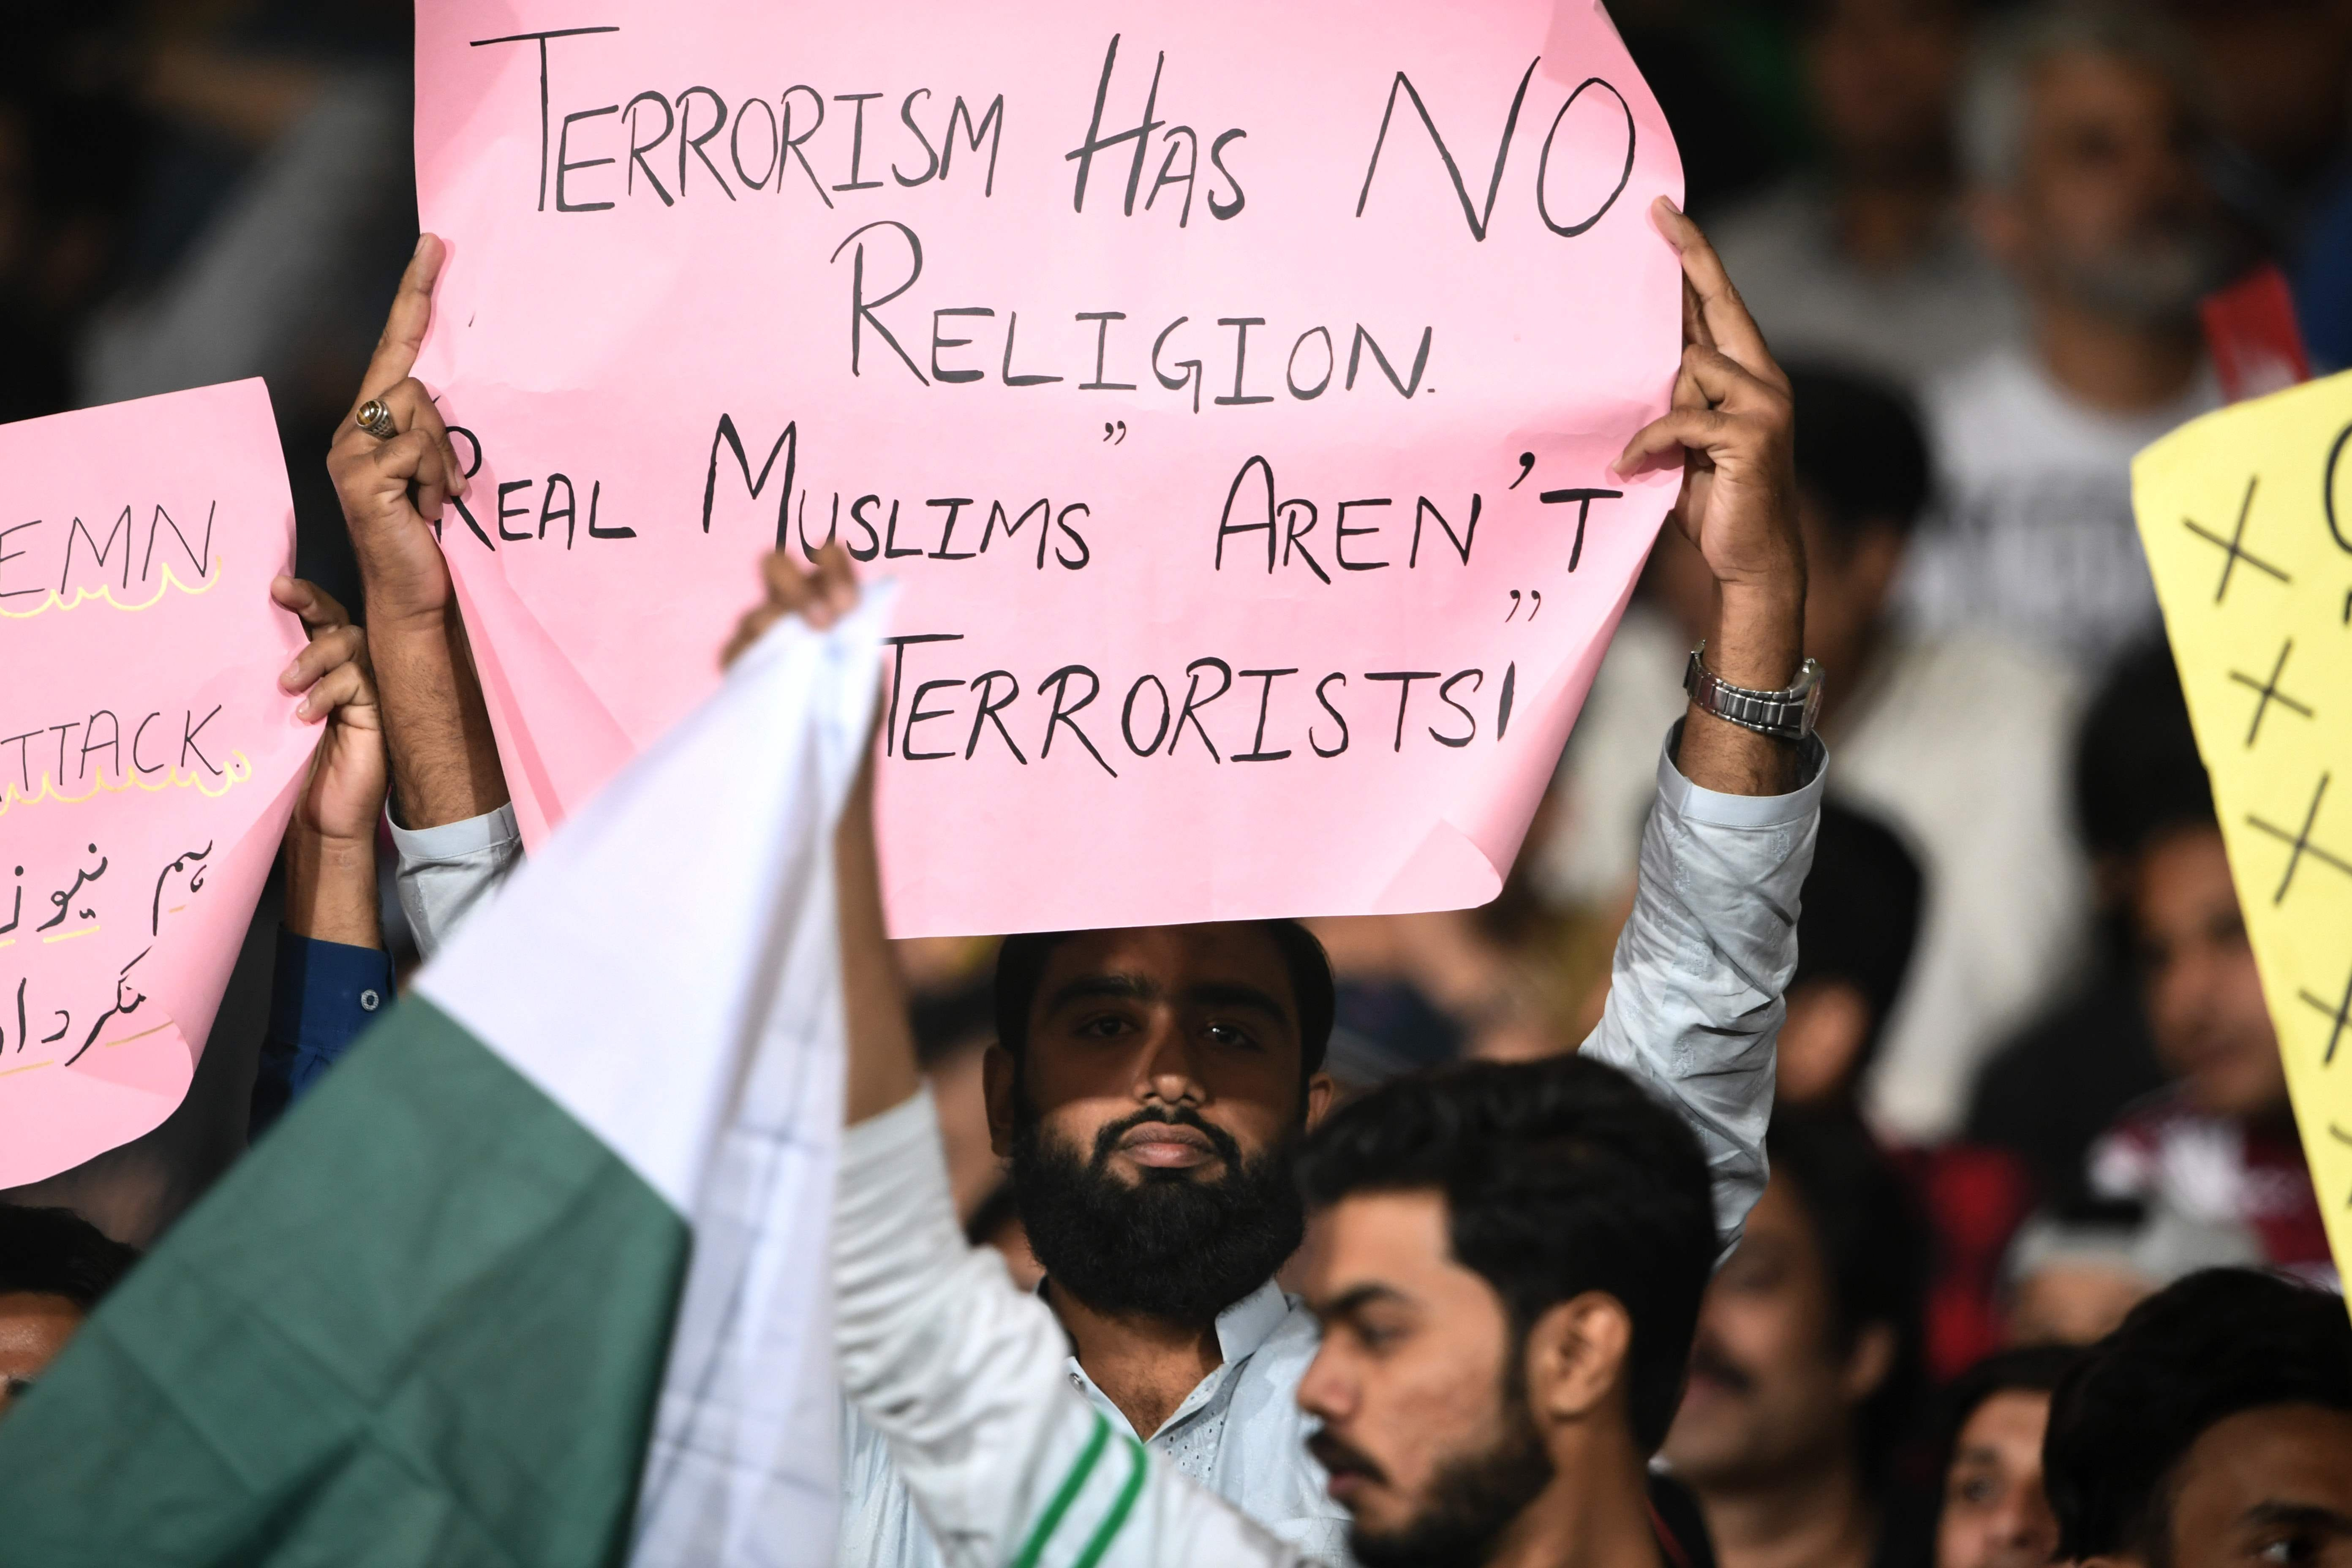 "A cricket supporter holds a sign reading ""Terrorism has no religion real Muslims aren't terrorists!"", after the mass shooting that occurred in New Zealand, during the 2nd elimination PSL Twenty20 match between Peshawar Zalmi and Islamabad United in Karachi on March 15, 2019."